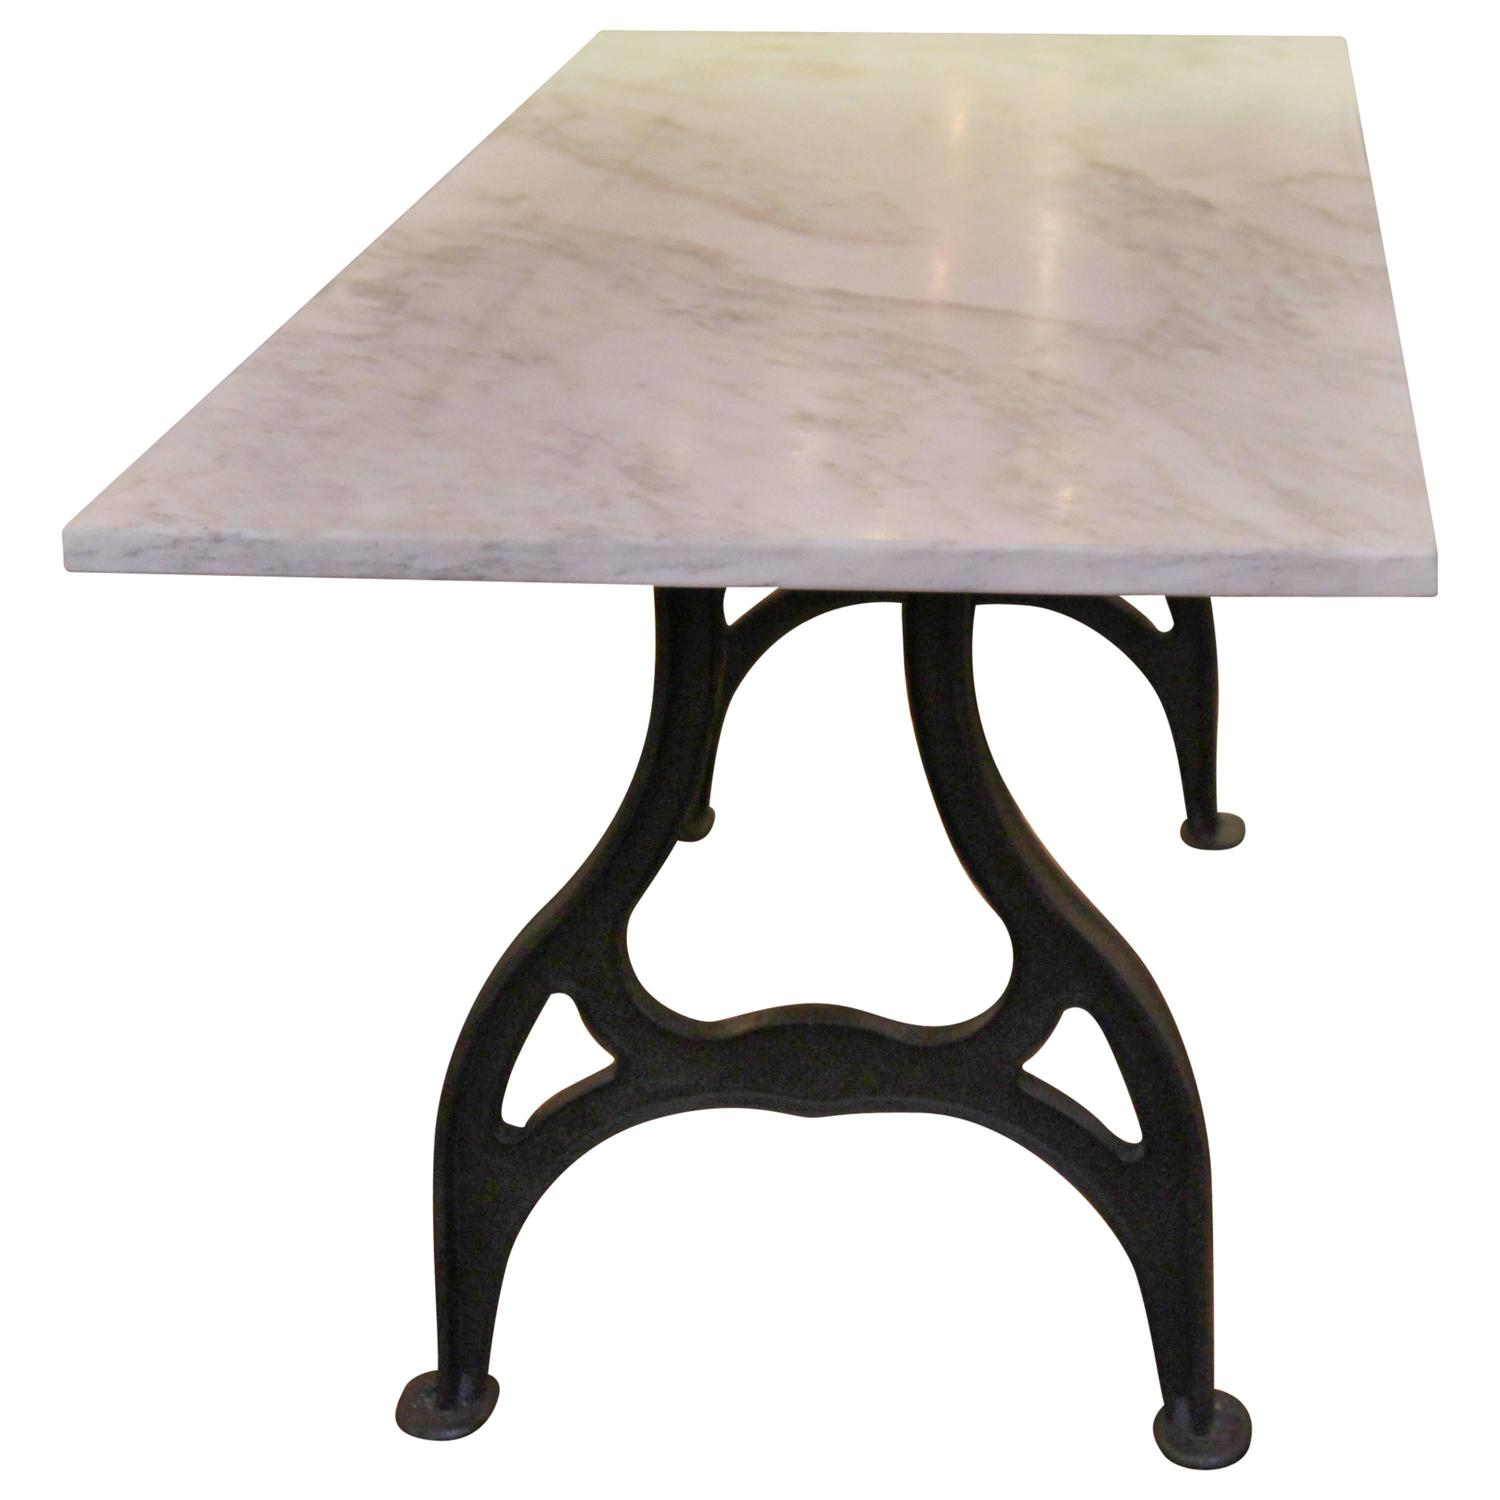 Iron Table Legs : Reclaimed Marble Table with Cast Iron Industrial Legs at 1stdibs